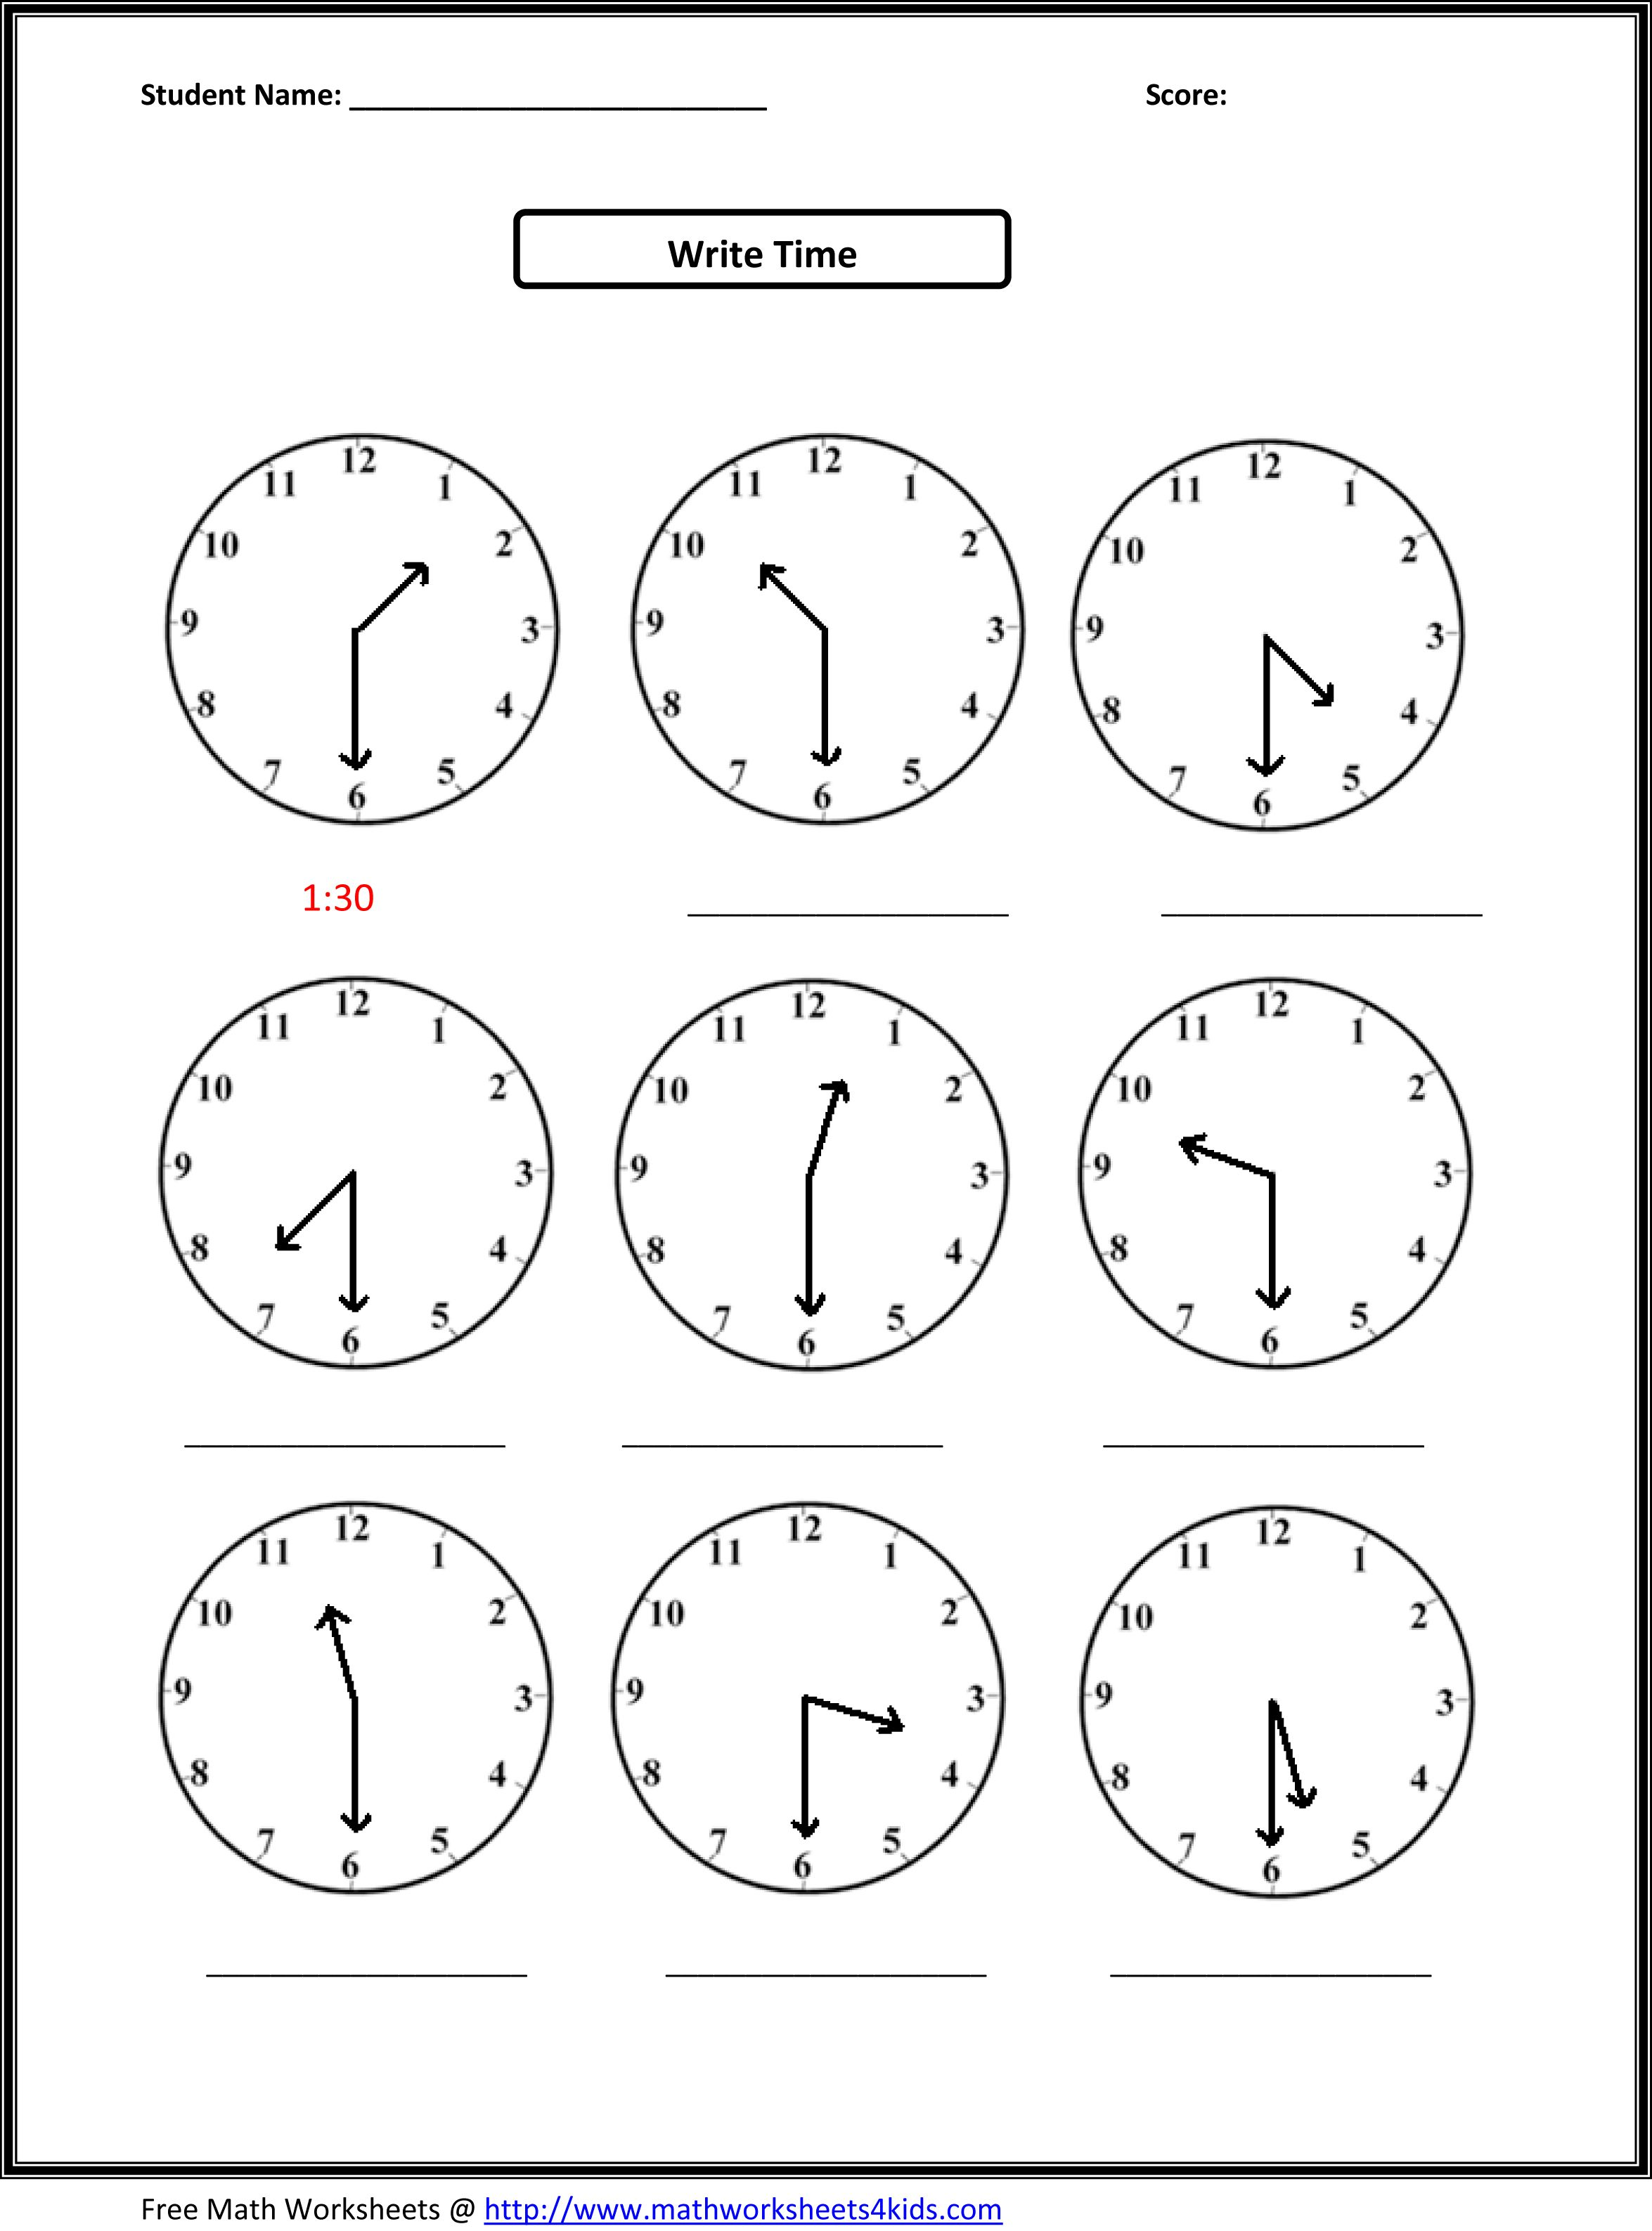 Weirdmailus  Marvellous Worksheet On Time For Grade   Reocurent With Heavenly Free Printable Telling Time Worksheets Nd Grade  Reocurent With Adorable Maths Algebra Equations Worksheets Also Math Worksheet For Class  In Addition Definite And Indefinite Articles Worksheet And Camera Shots Worksheet As Well As Classifying Objects Worksheets Additionally Young Ones Of Animals Worksheet From Reocurentcom With Weirdmailus  Heavenly Worksheet On Time For Grade   Reocurent With Adorable Free Printable Telling Time Worksheets Nd Grade  Reocurent And Marvellous Maths Algebra Equations Worksheets Also Math Worksheet For Class  In Addition Definite And Indefinite Articles Worksheet From Reocurentcom